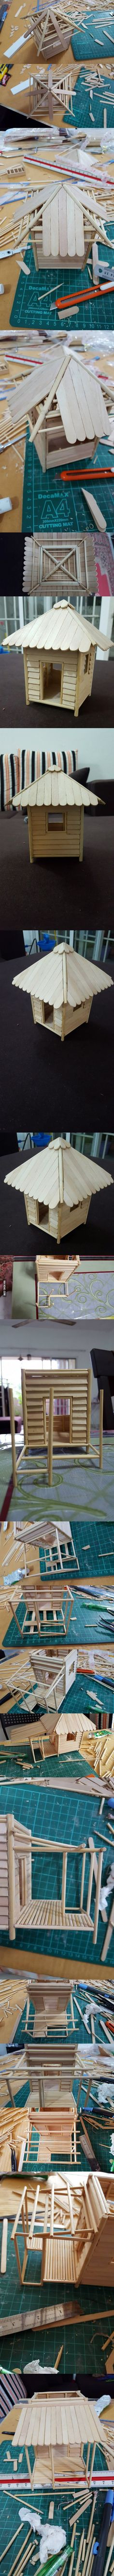 Step by Step to Make a Mini Beach Hut Part 2 - 9GAG